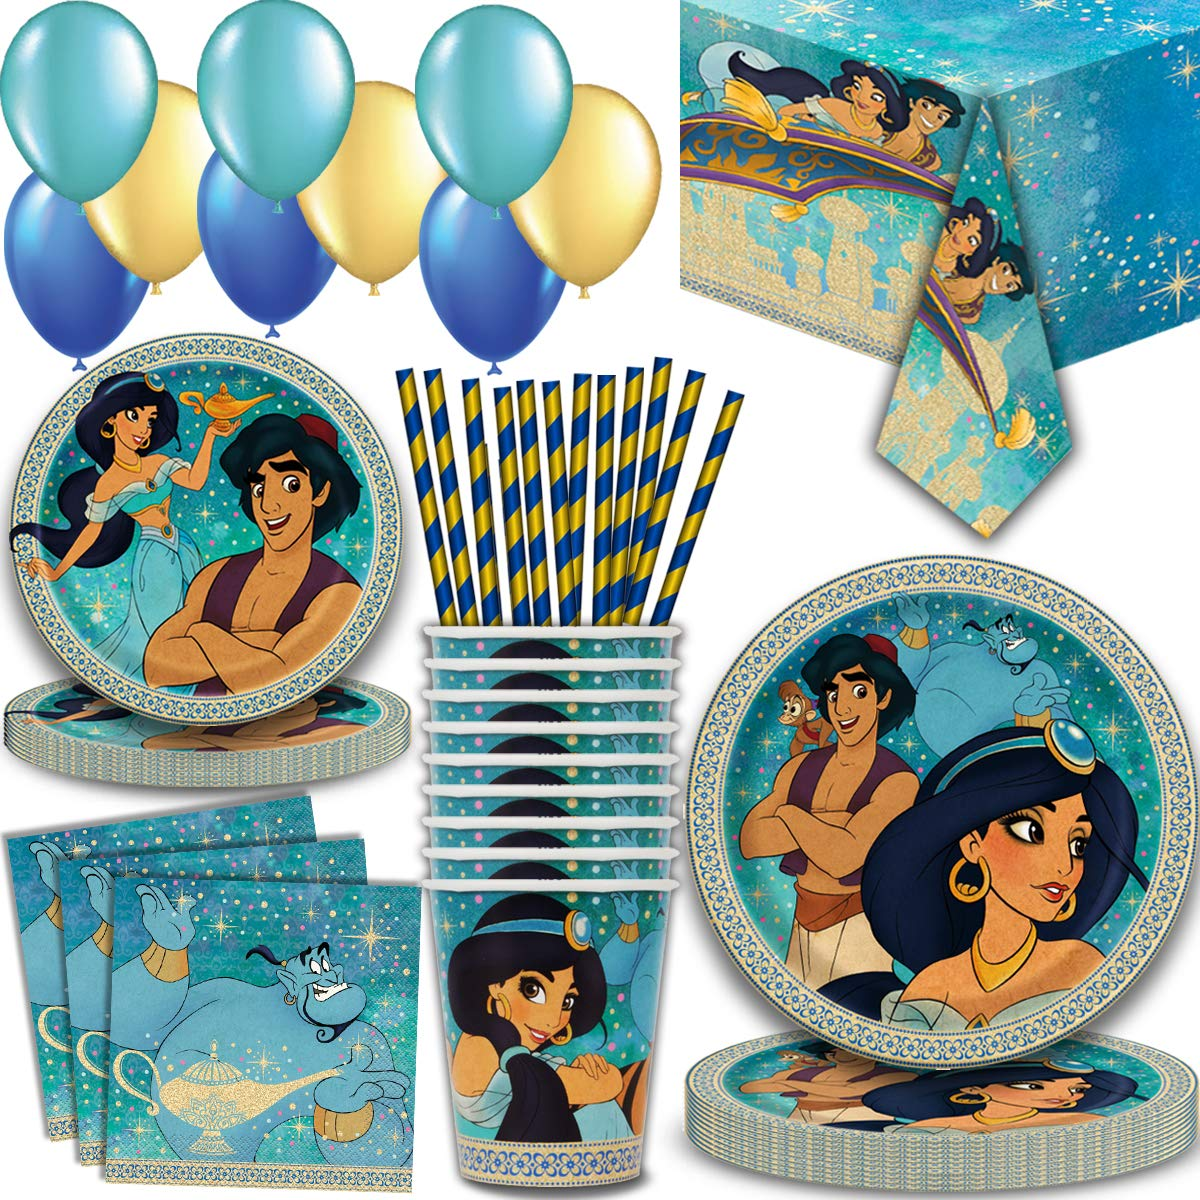 Aladdin Party Supplies for 16 - Large Plates, cake plates, Napkins, Tablecloth, Cups, Straws - Great Decorative Birthday Set with Aladdin, Jasmine, Genie, Magic Carpet, Sultan, Abu, Jafar and more! by HeroFiber